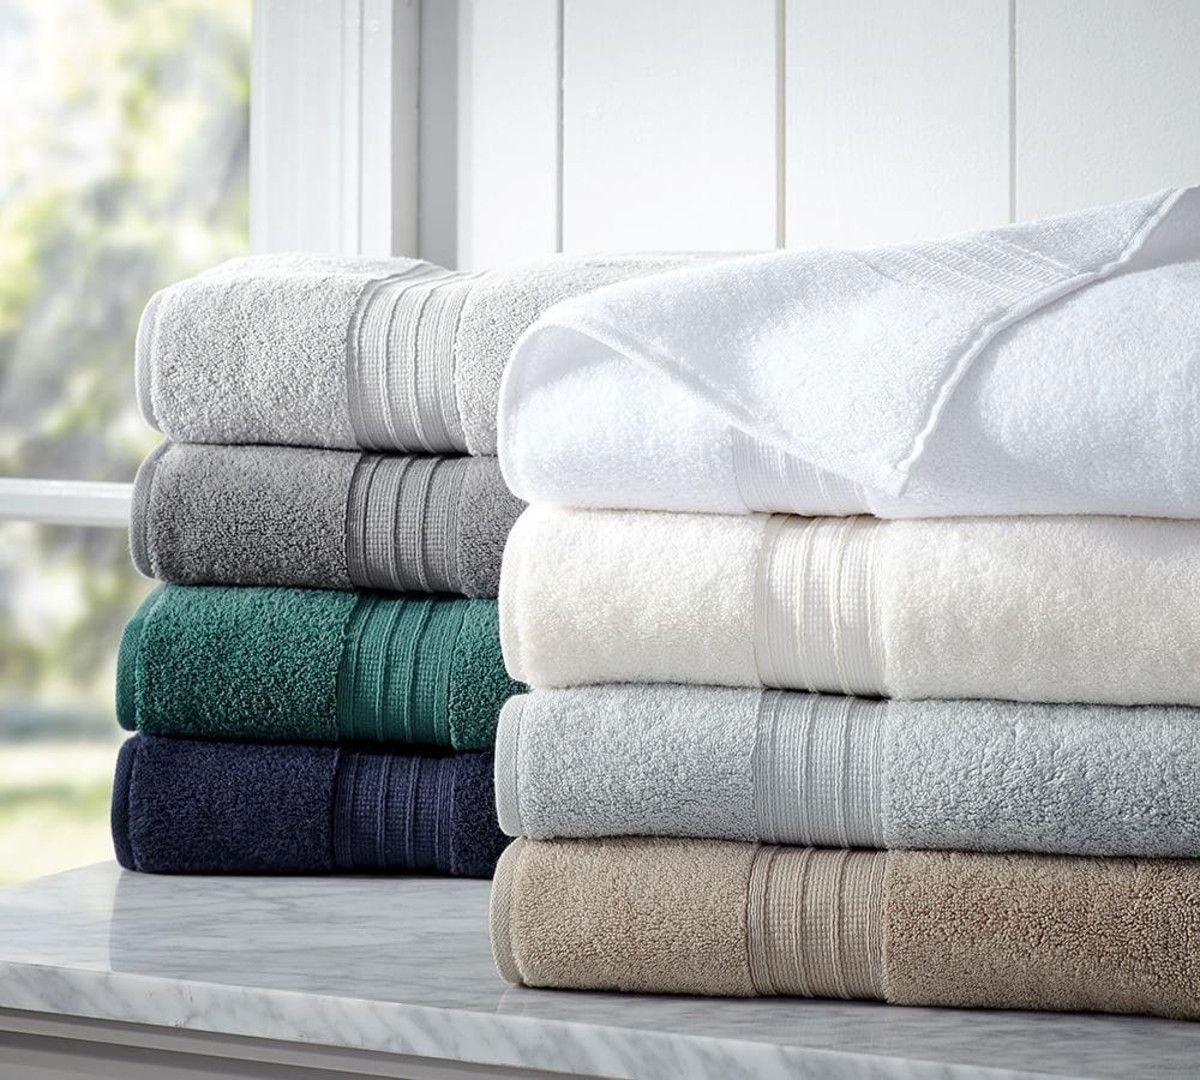 Hydrocotton Bath Towels Stunning Hydrocotton Bath Towels  Home  Pinterest  Towels And Bath Design Inspiration